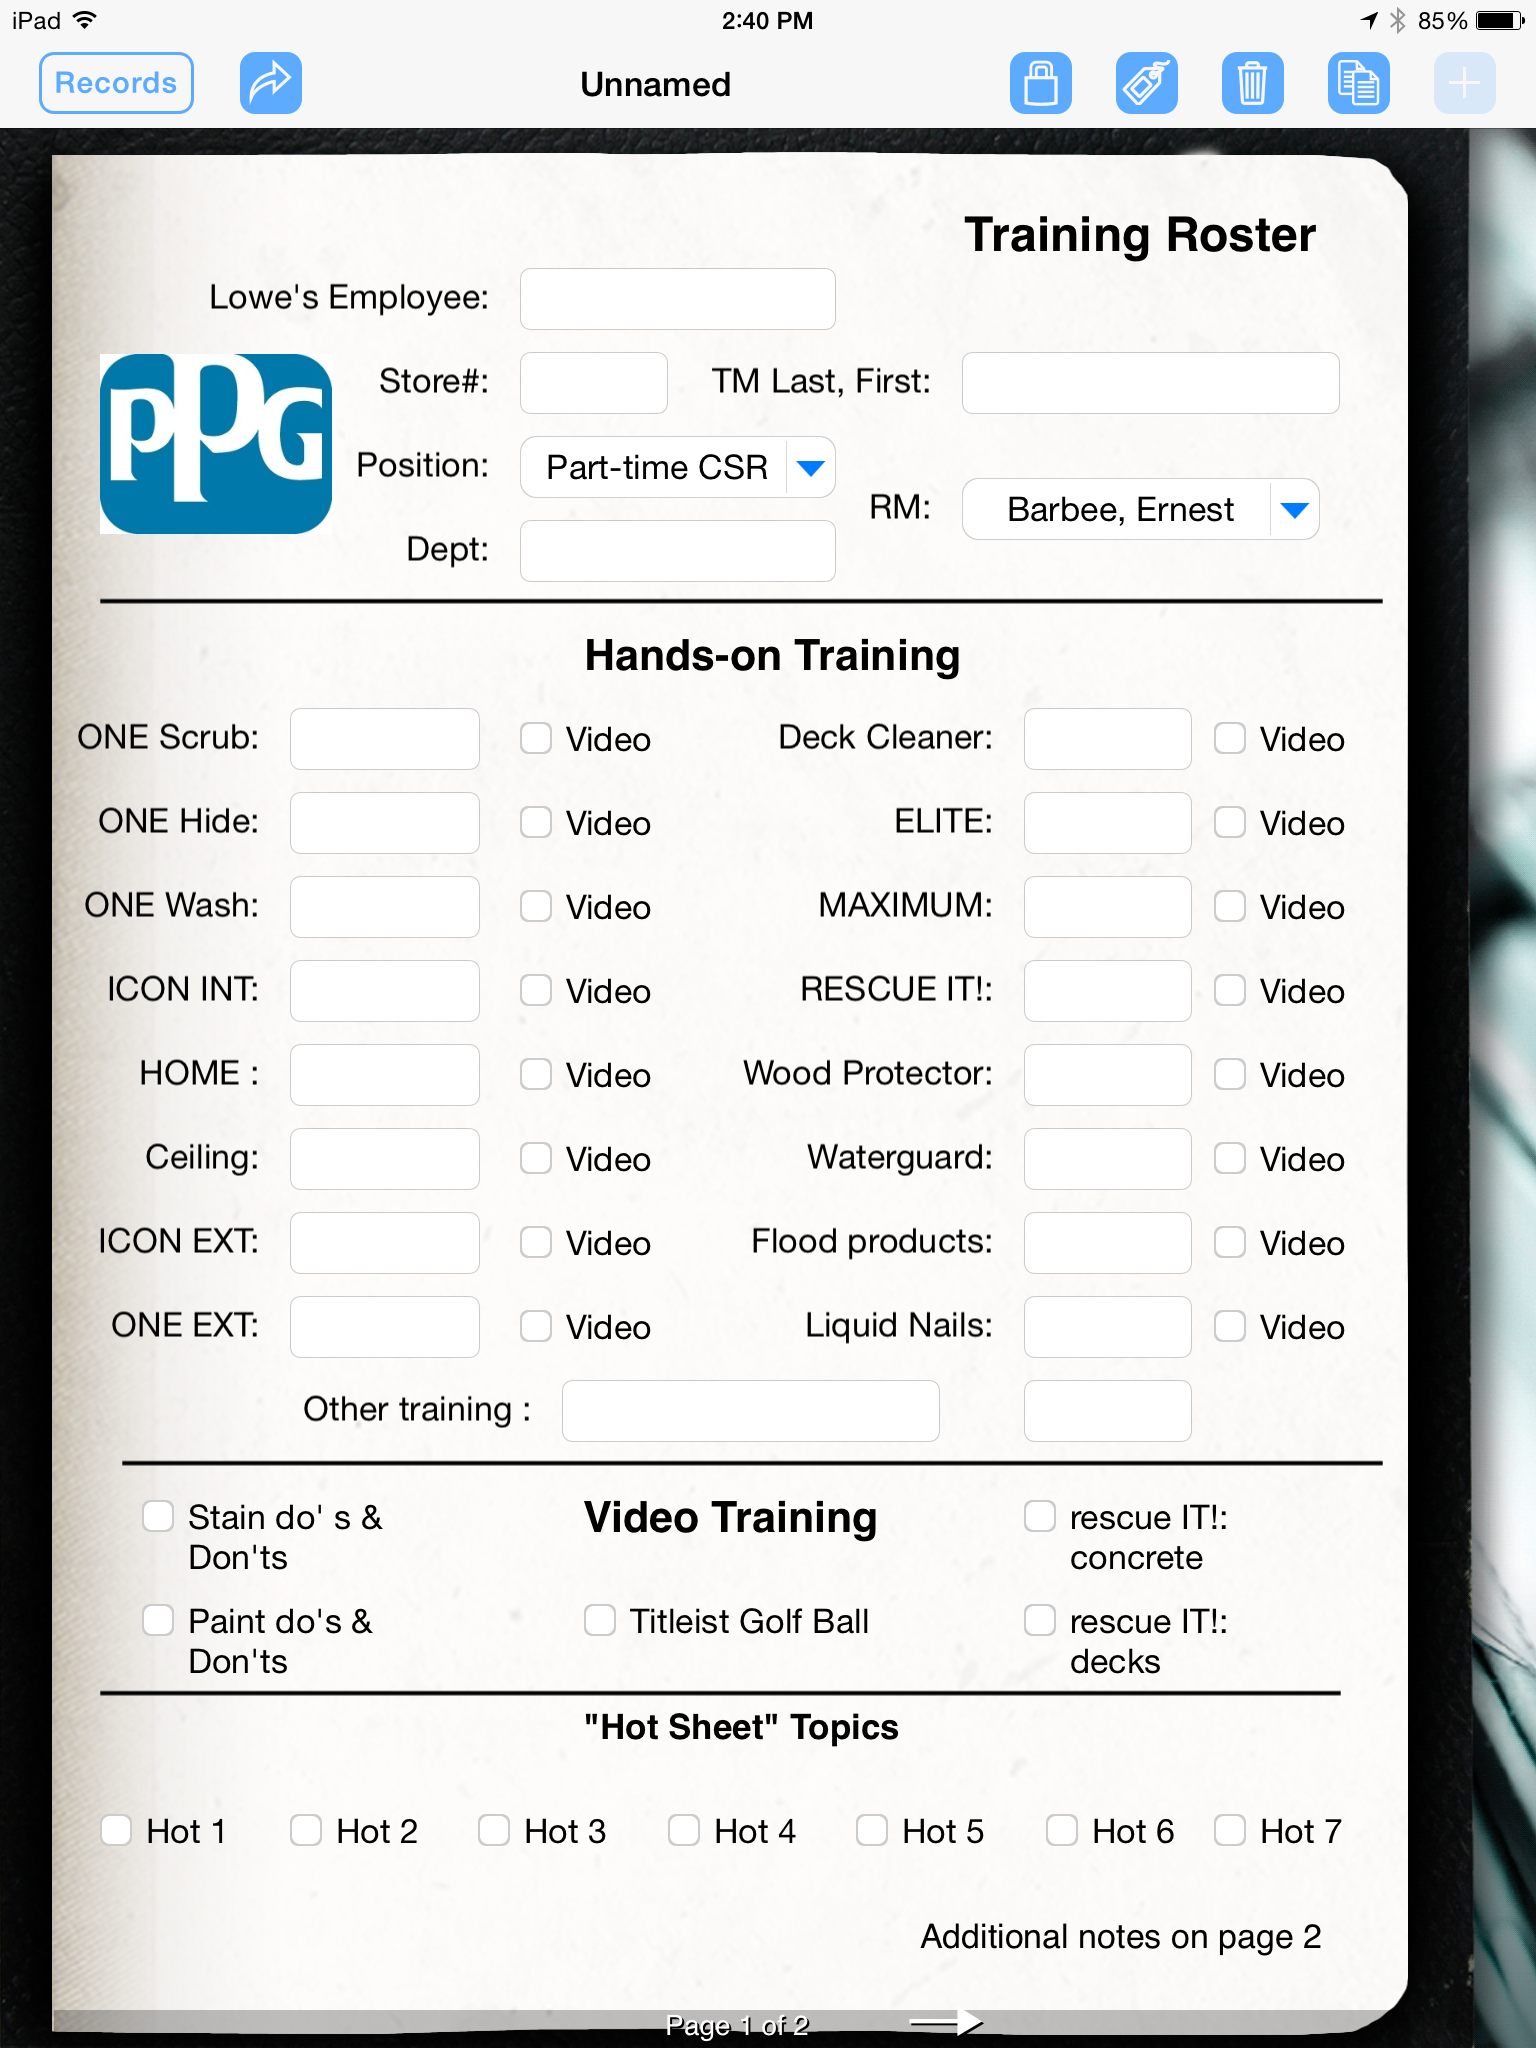 Training Roster Converted Into a Digital Form   Form Connections